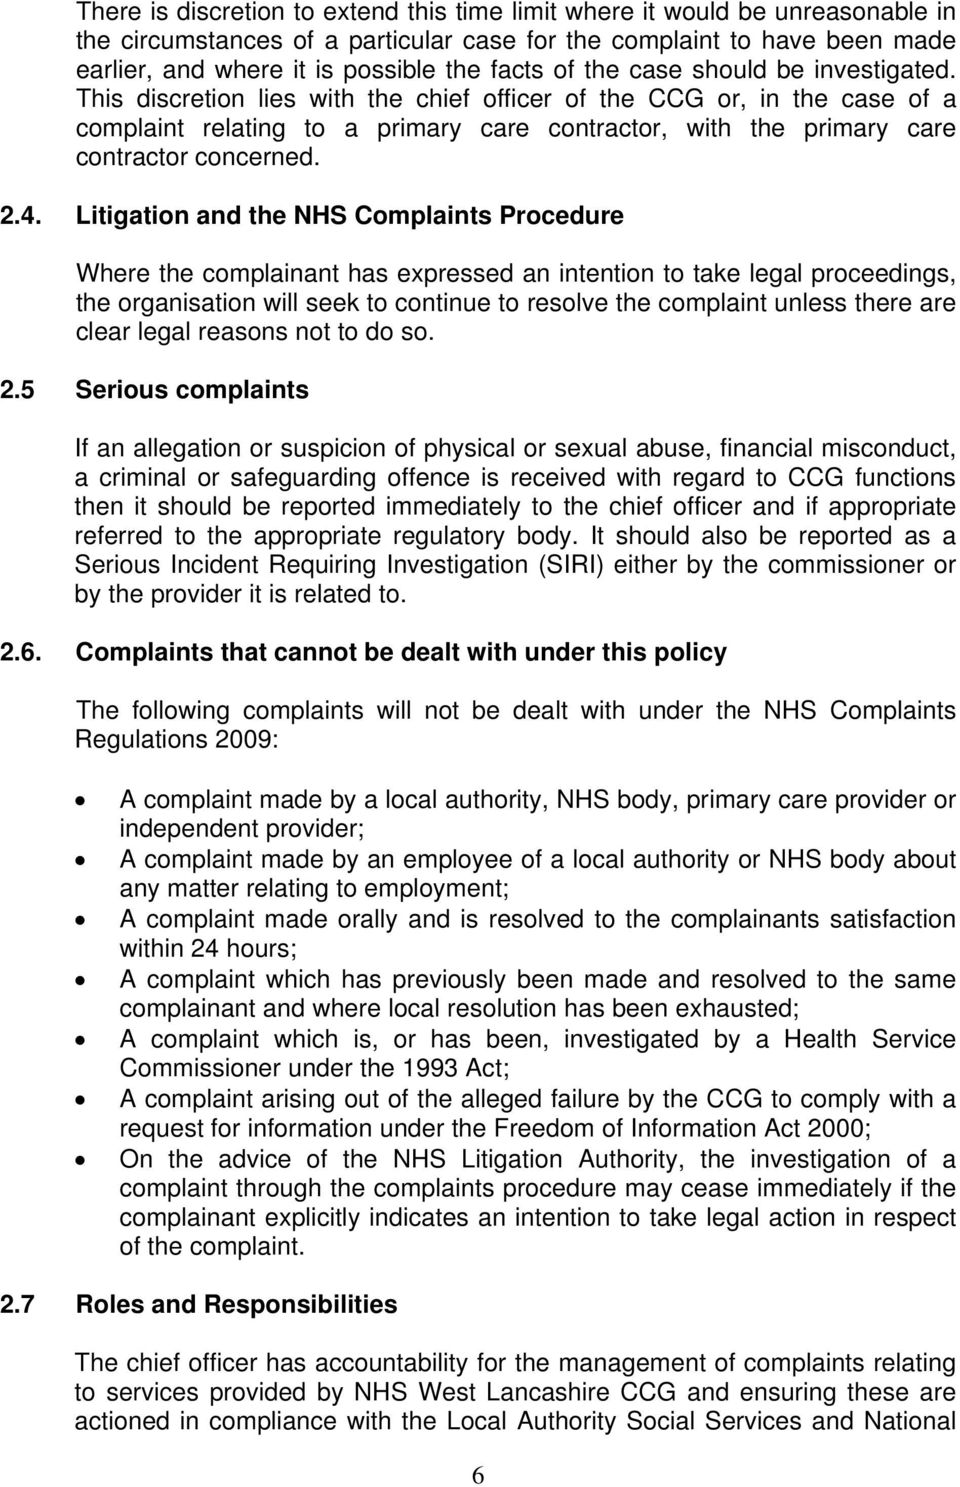 This discretion lies with the chief officer of the CCG or, in the case of a complaint relating to a primary care contractor, with the primary care contractor concerned. 2.4.